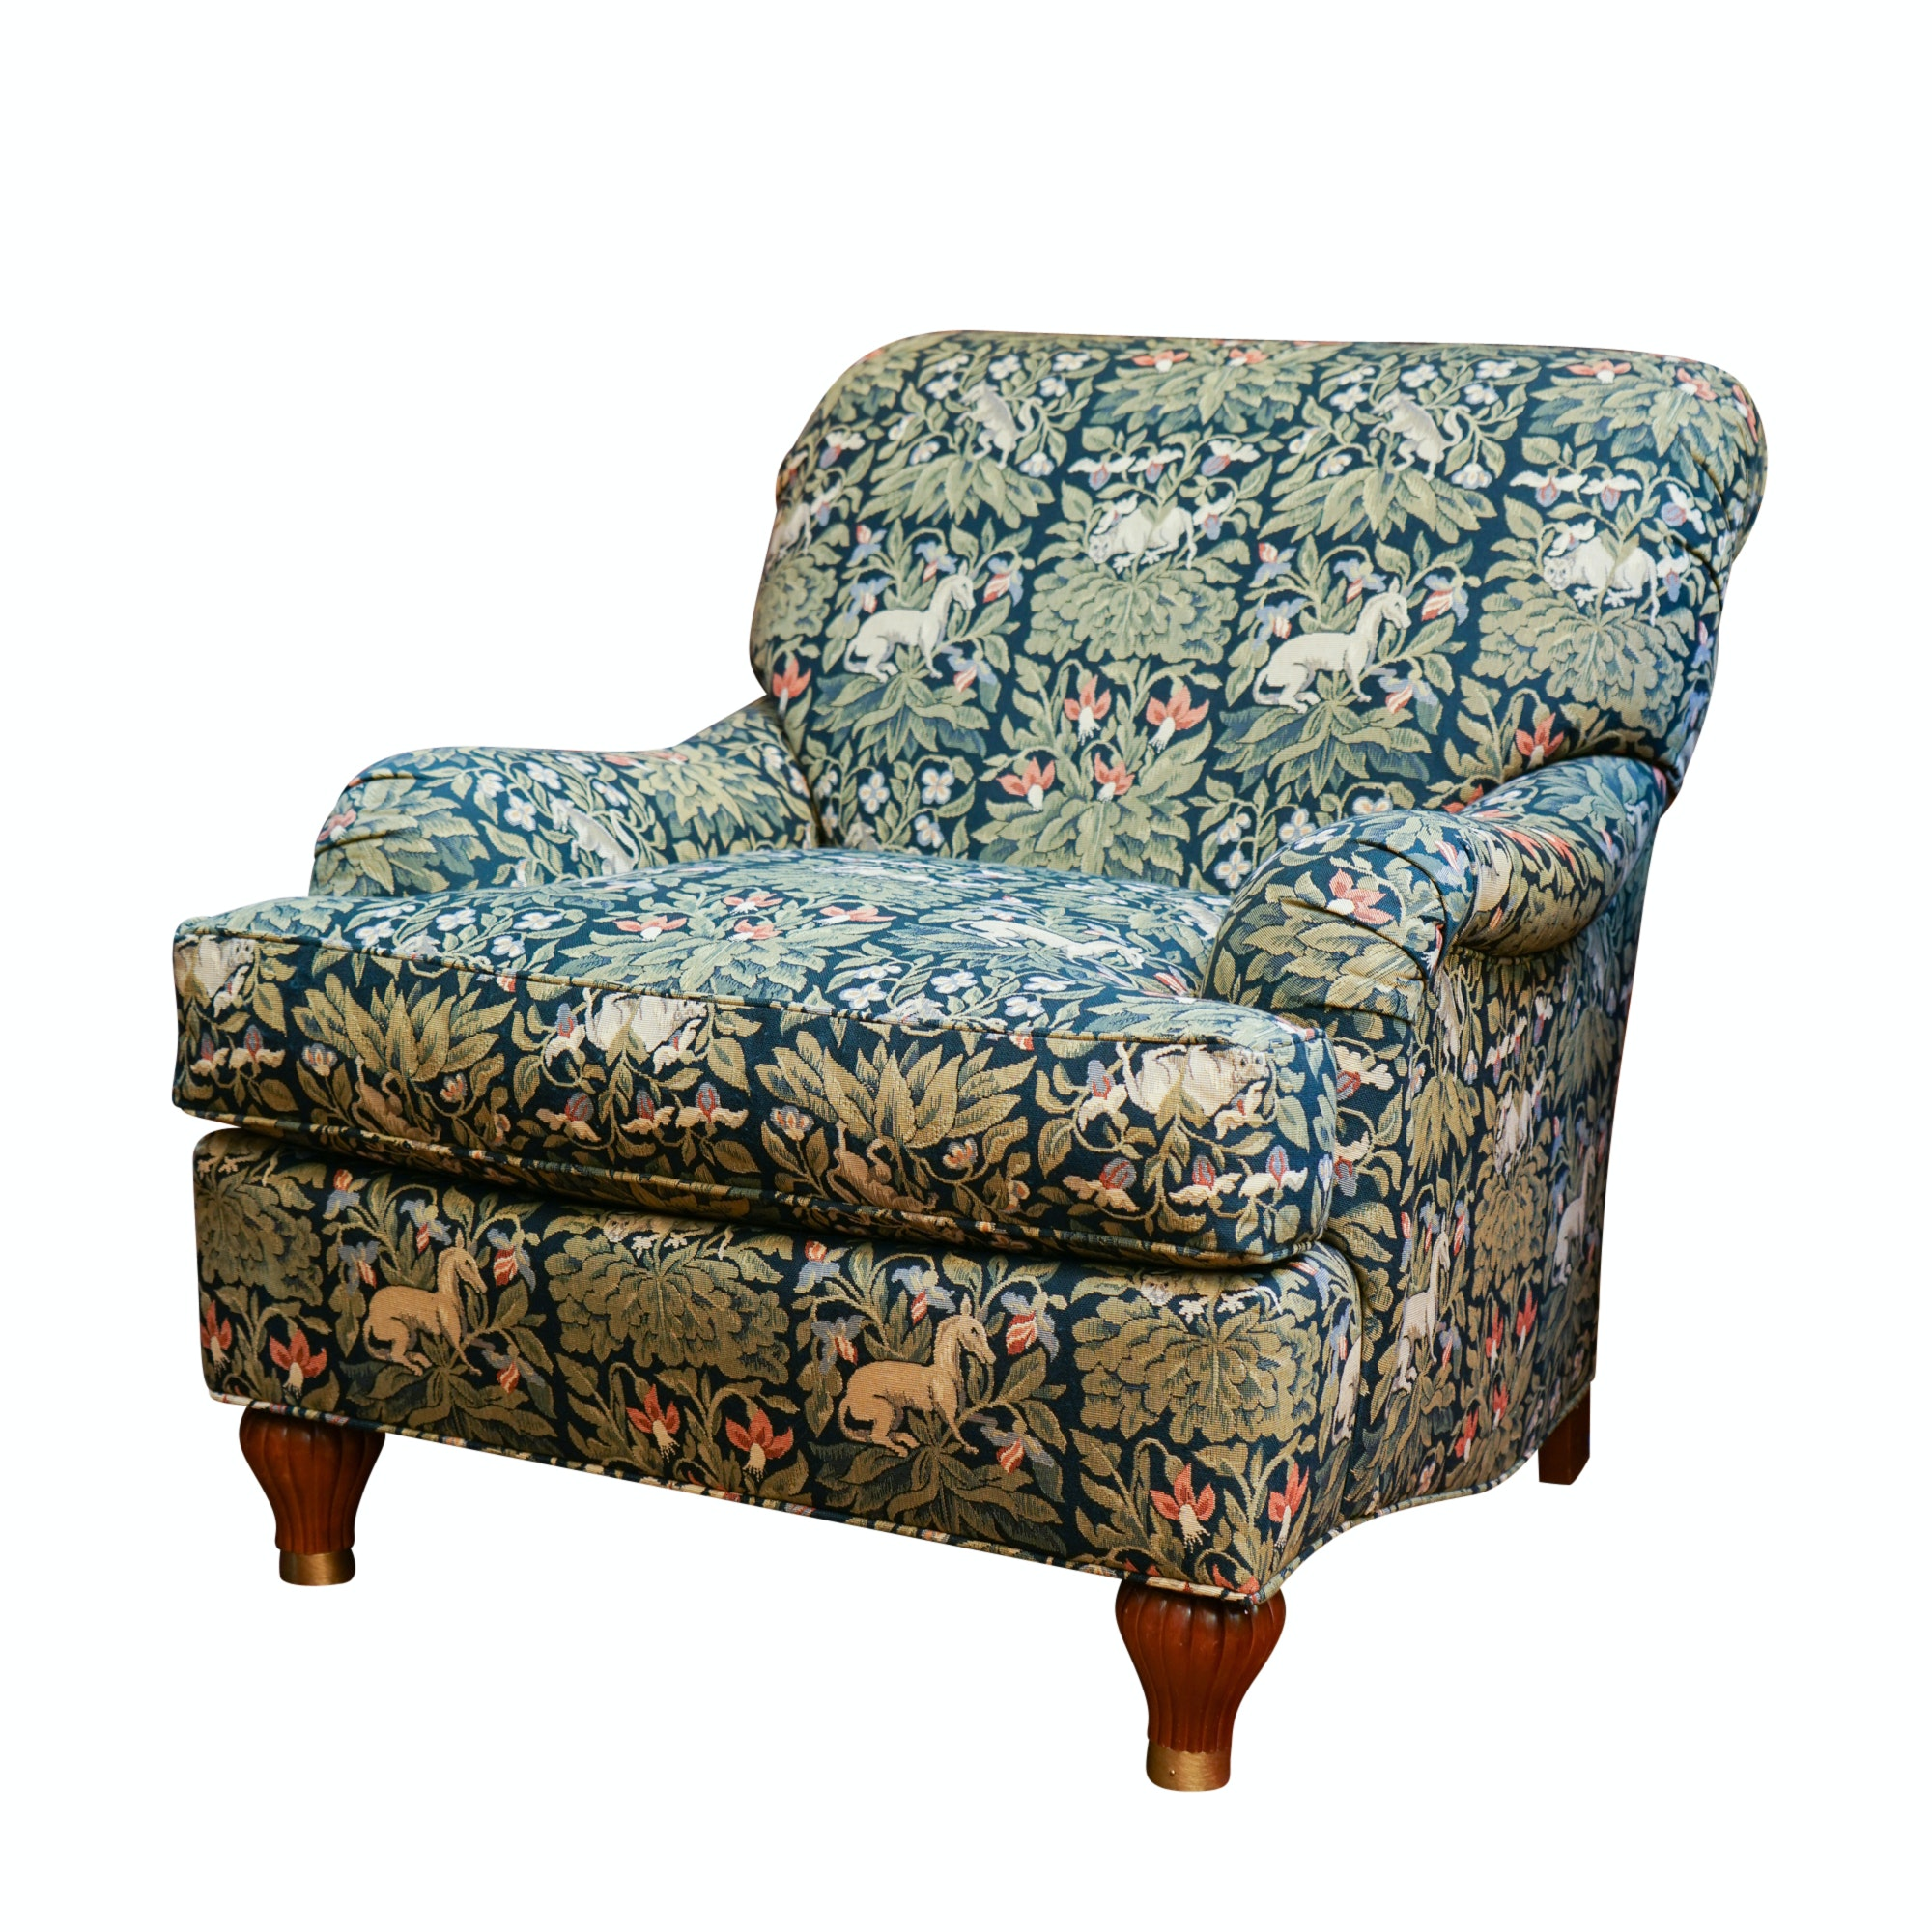 Print Upholstered Lounge Chair by Stanford Furniture